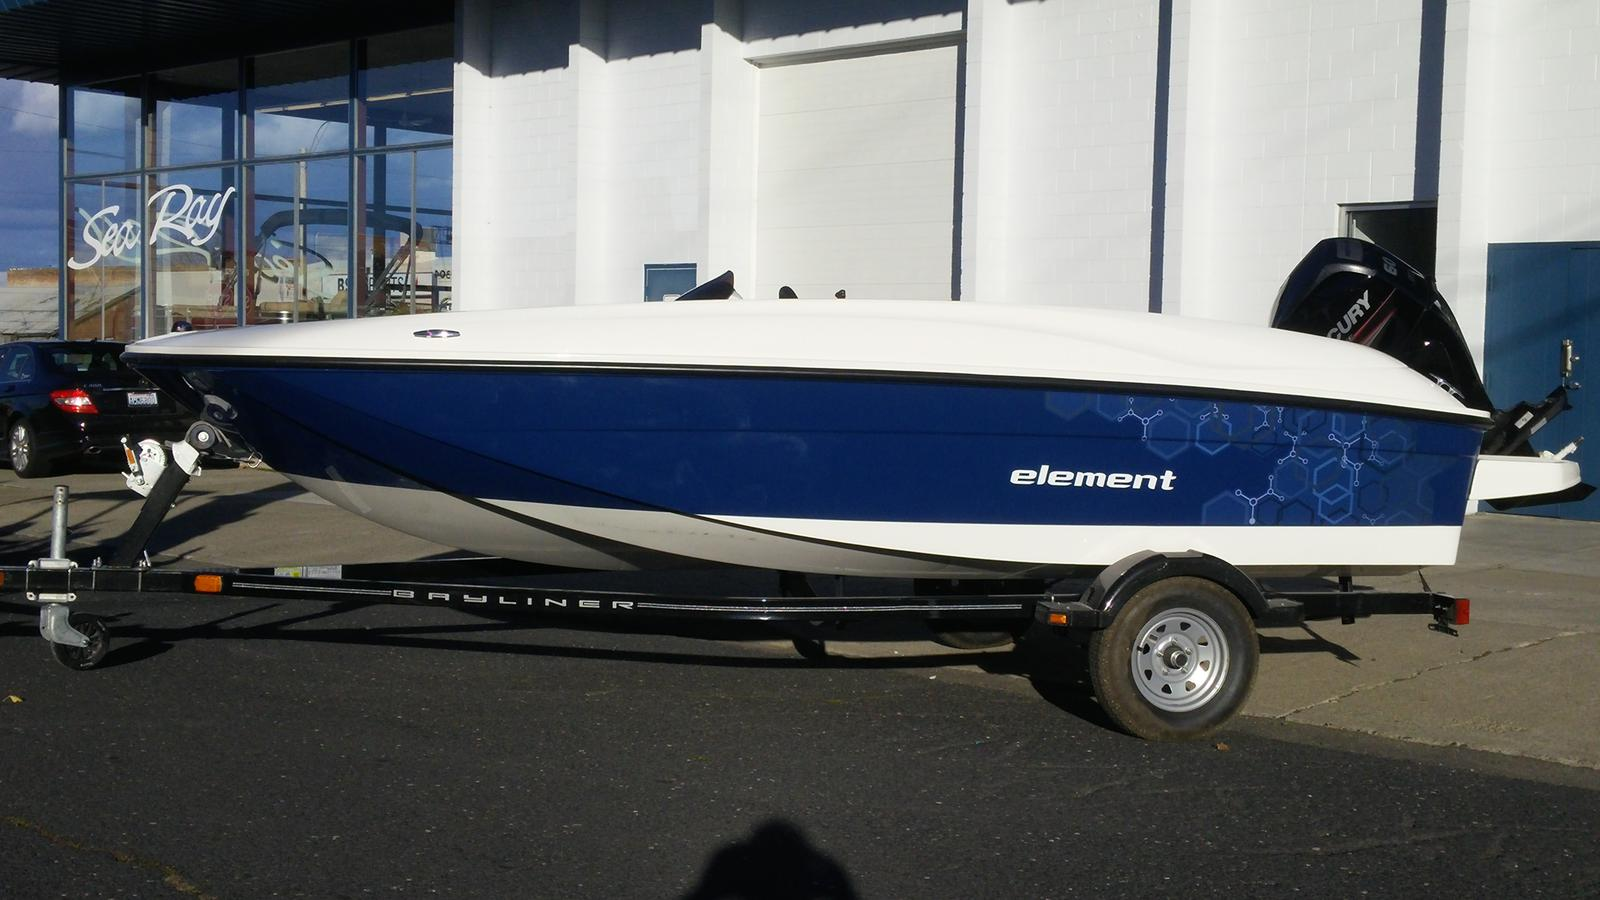 2018 BAYLINER E16 ELEMENT for sale